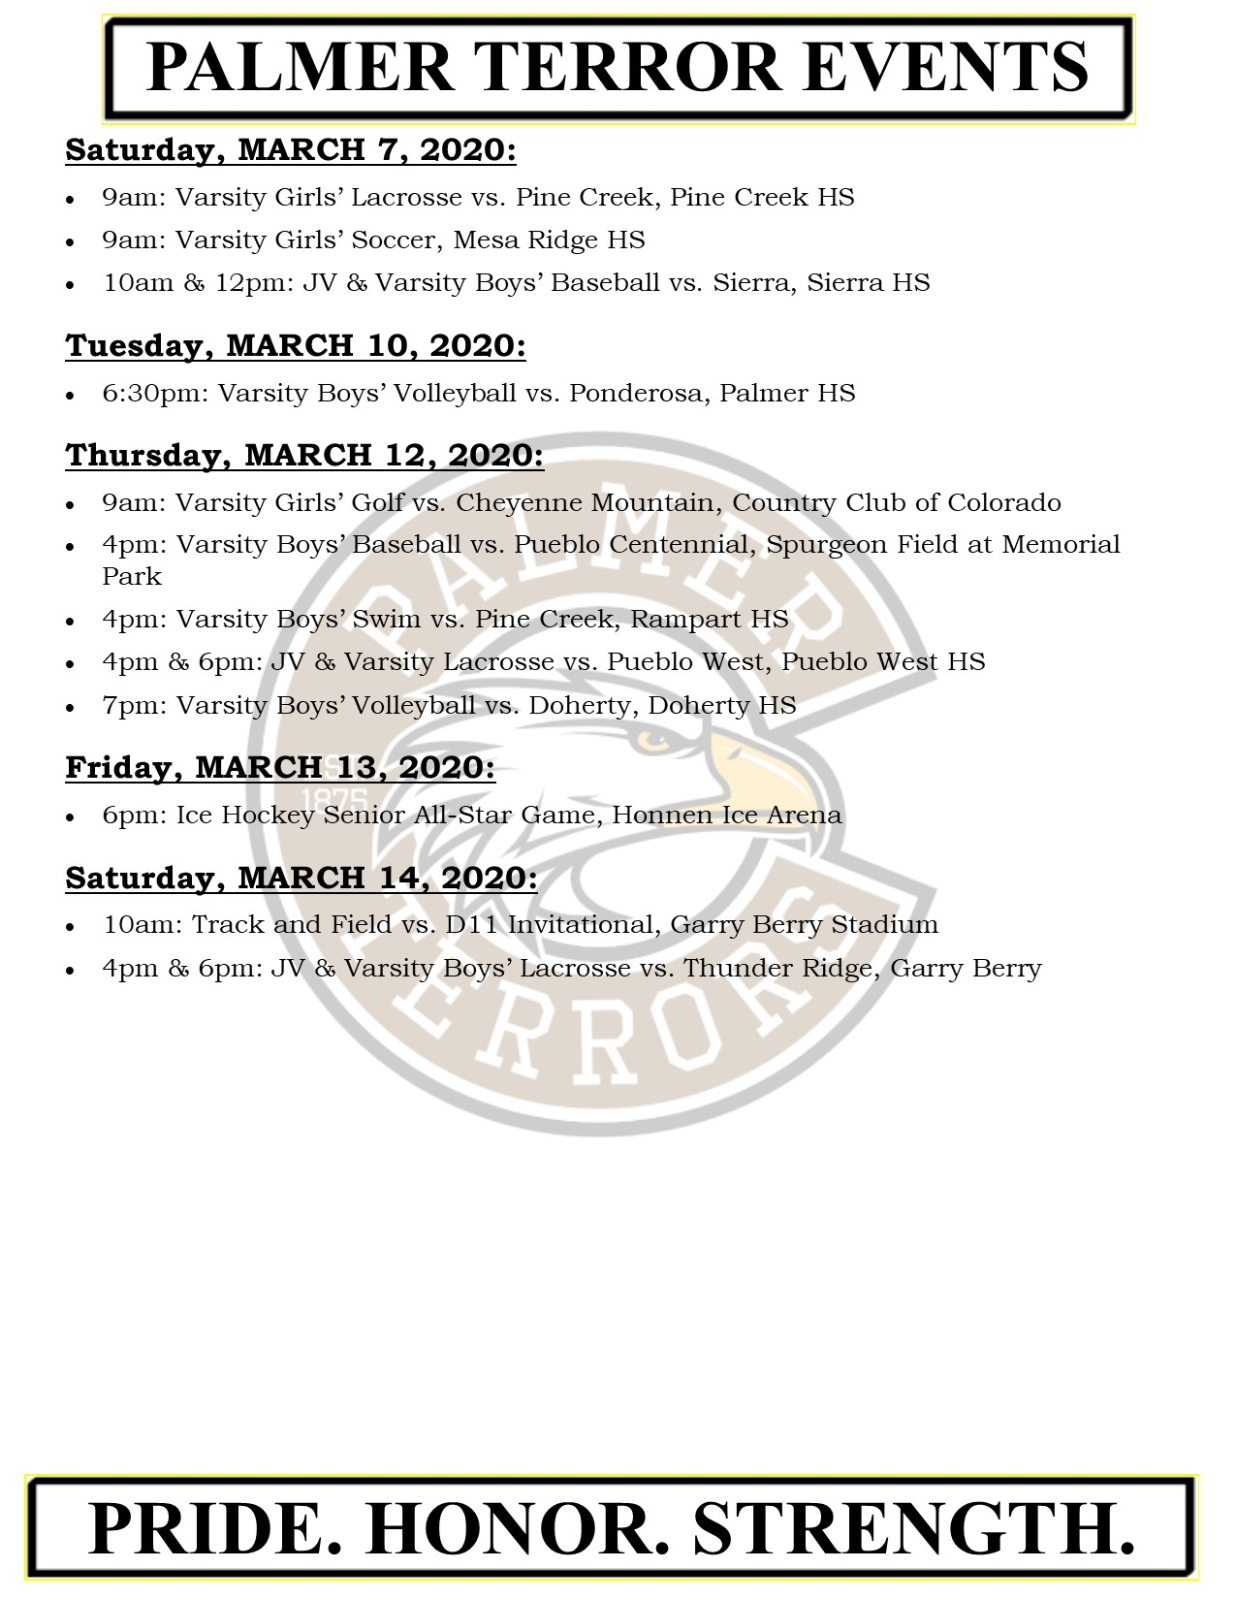 Palmer Events March 7-14